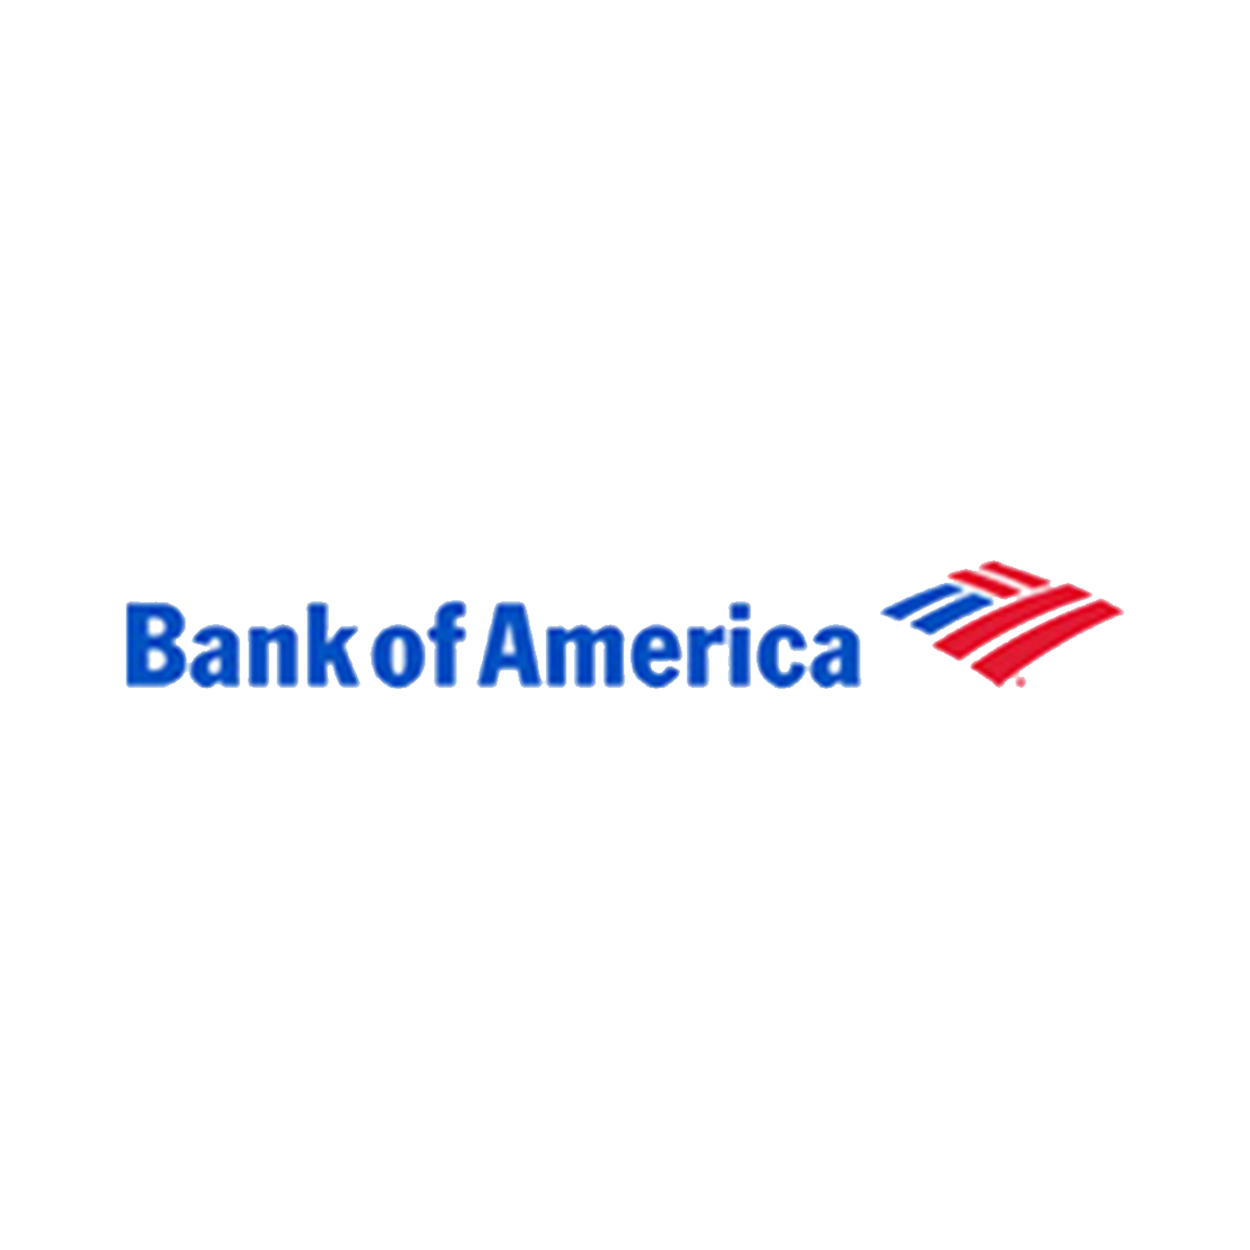 Bank of America - Installed audio/video equipment above each teller station and in customer waiting area and installed media streaming servers for 22 locations.